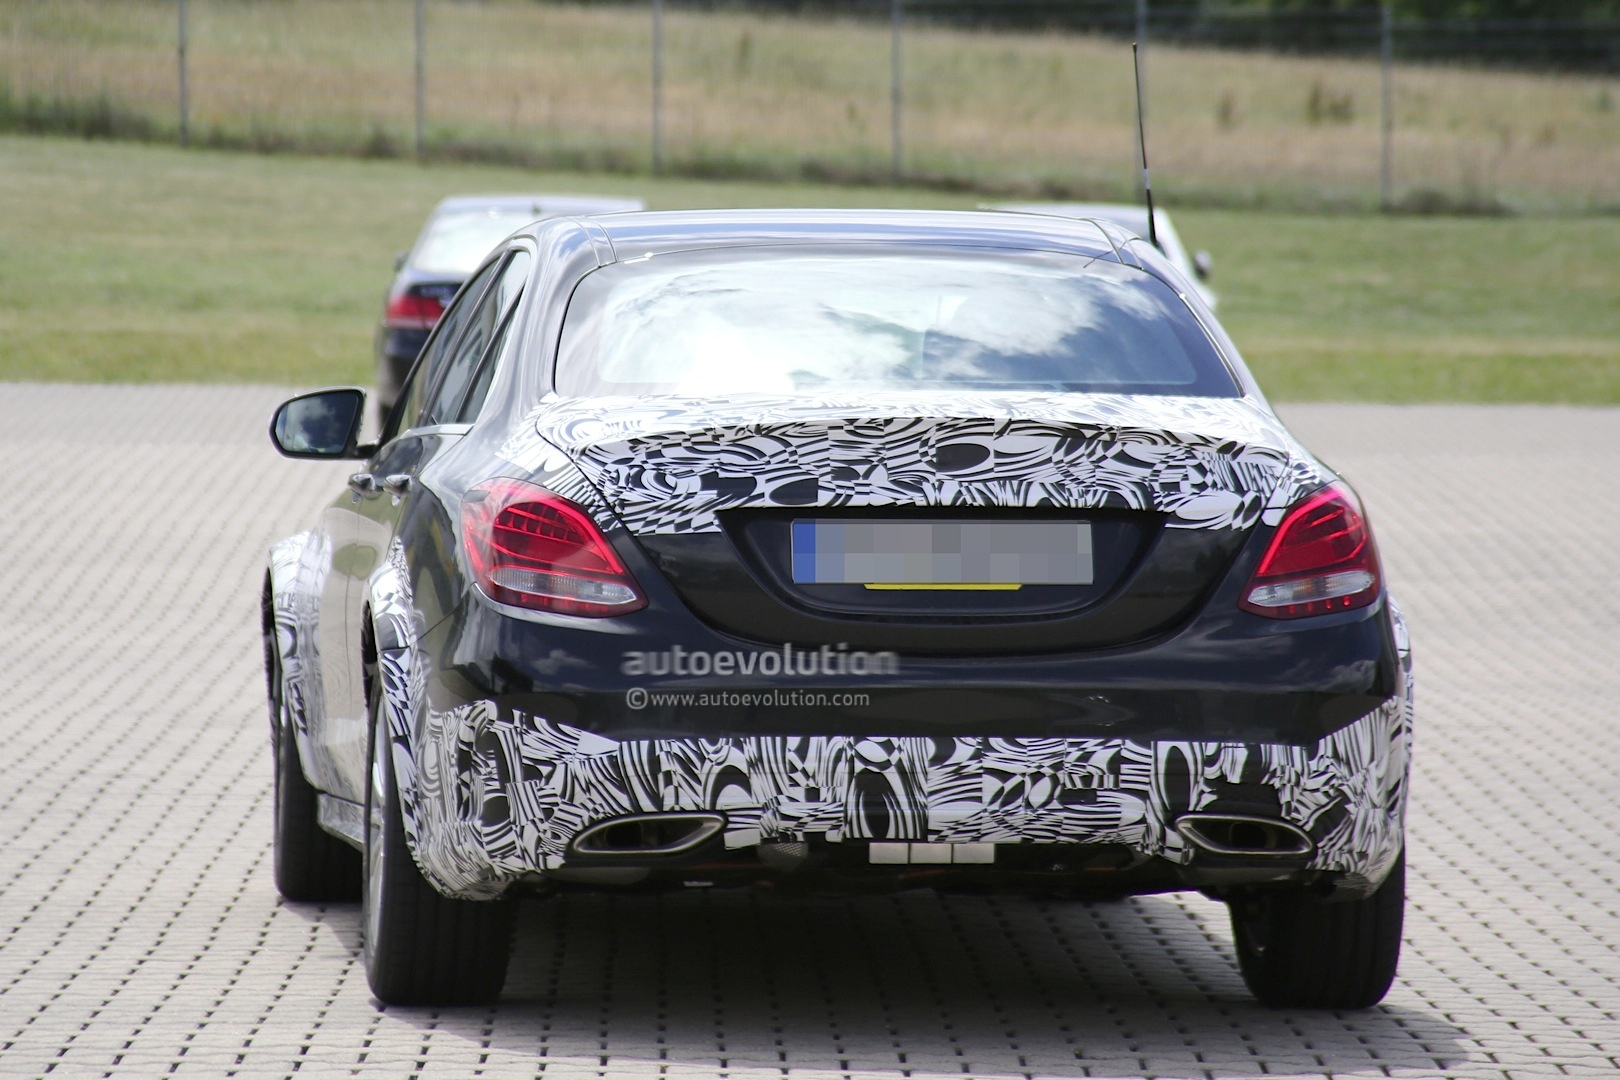 2016 - [Mercedes] Classe E [W213] - Page 2 E-class-w213-mule-based-on-current-c-class-spied-photo-gallery_12